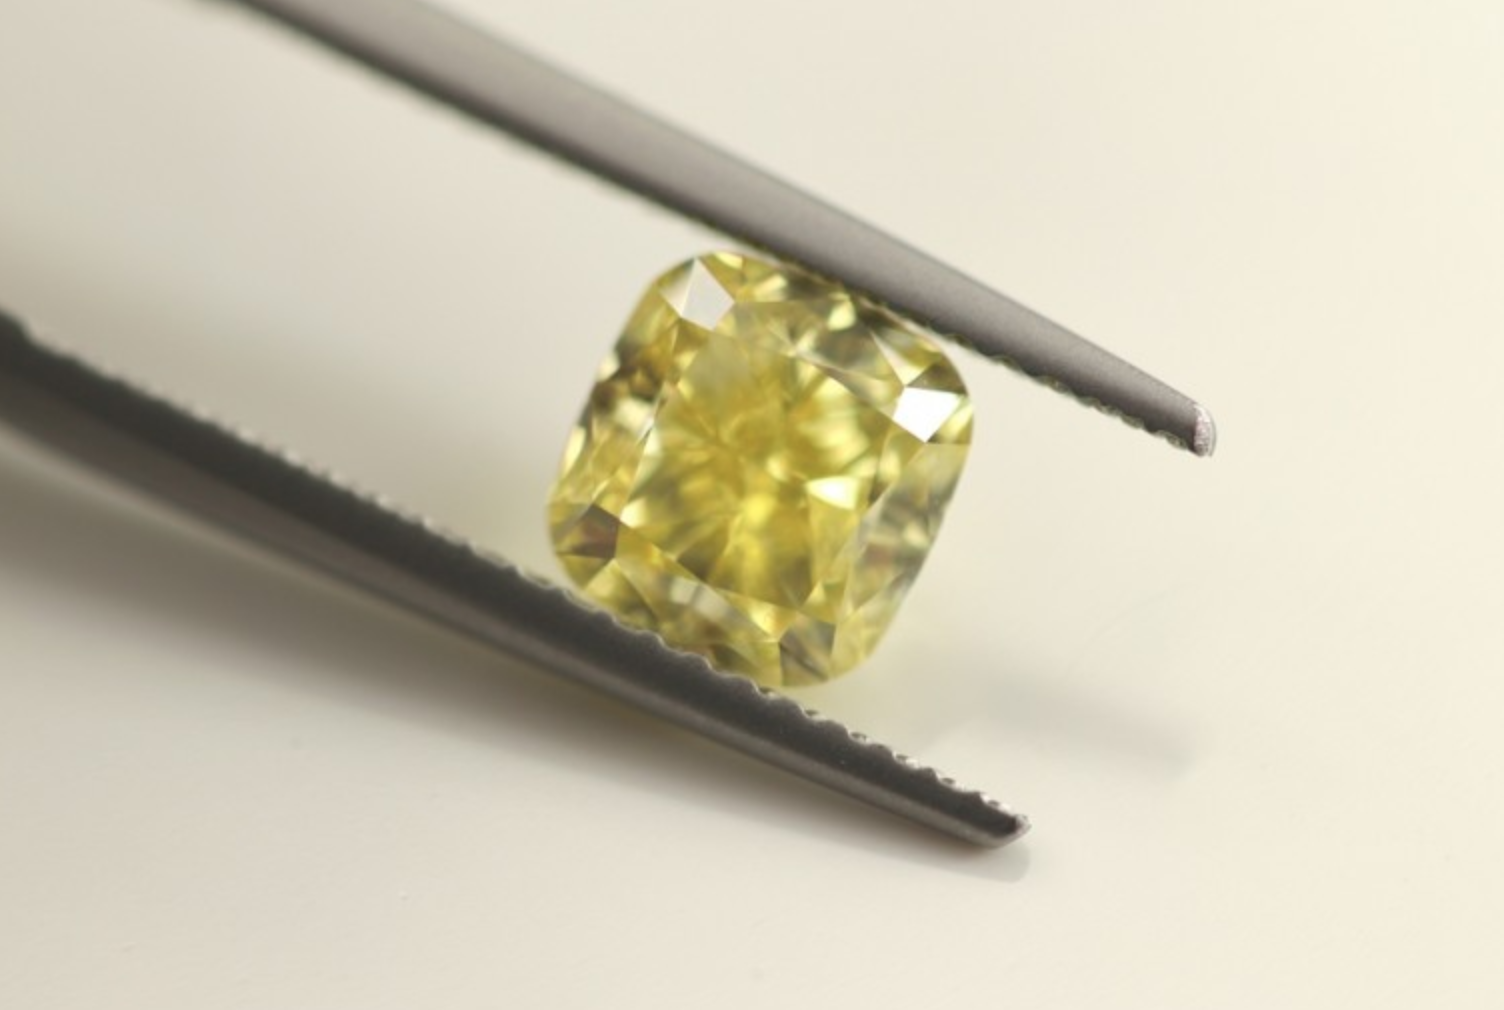 My favourite diamond: Cushion cut